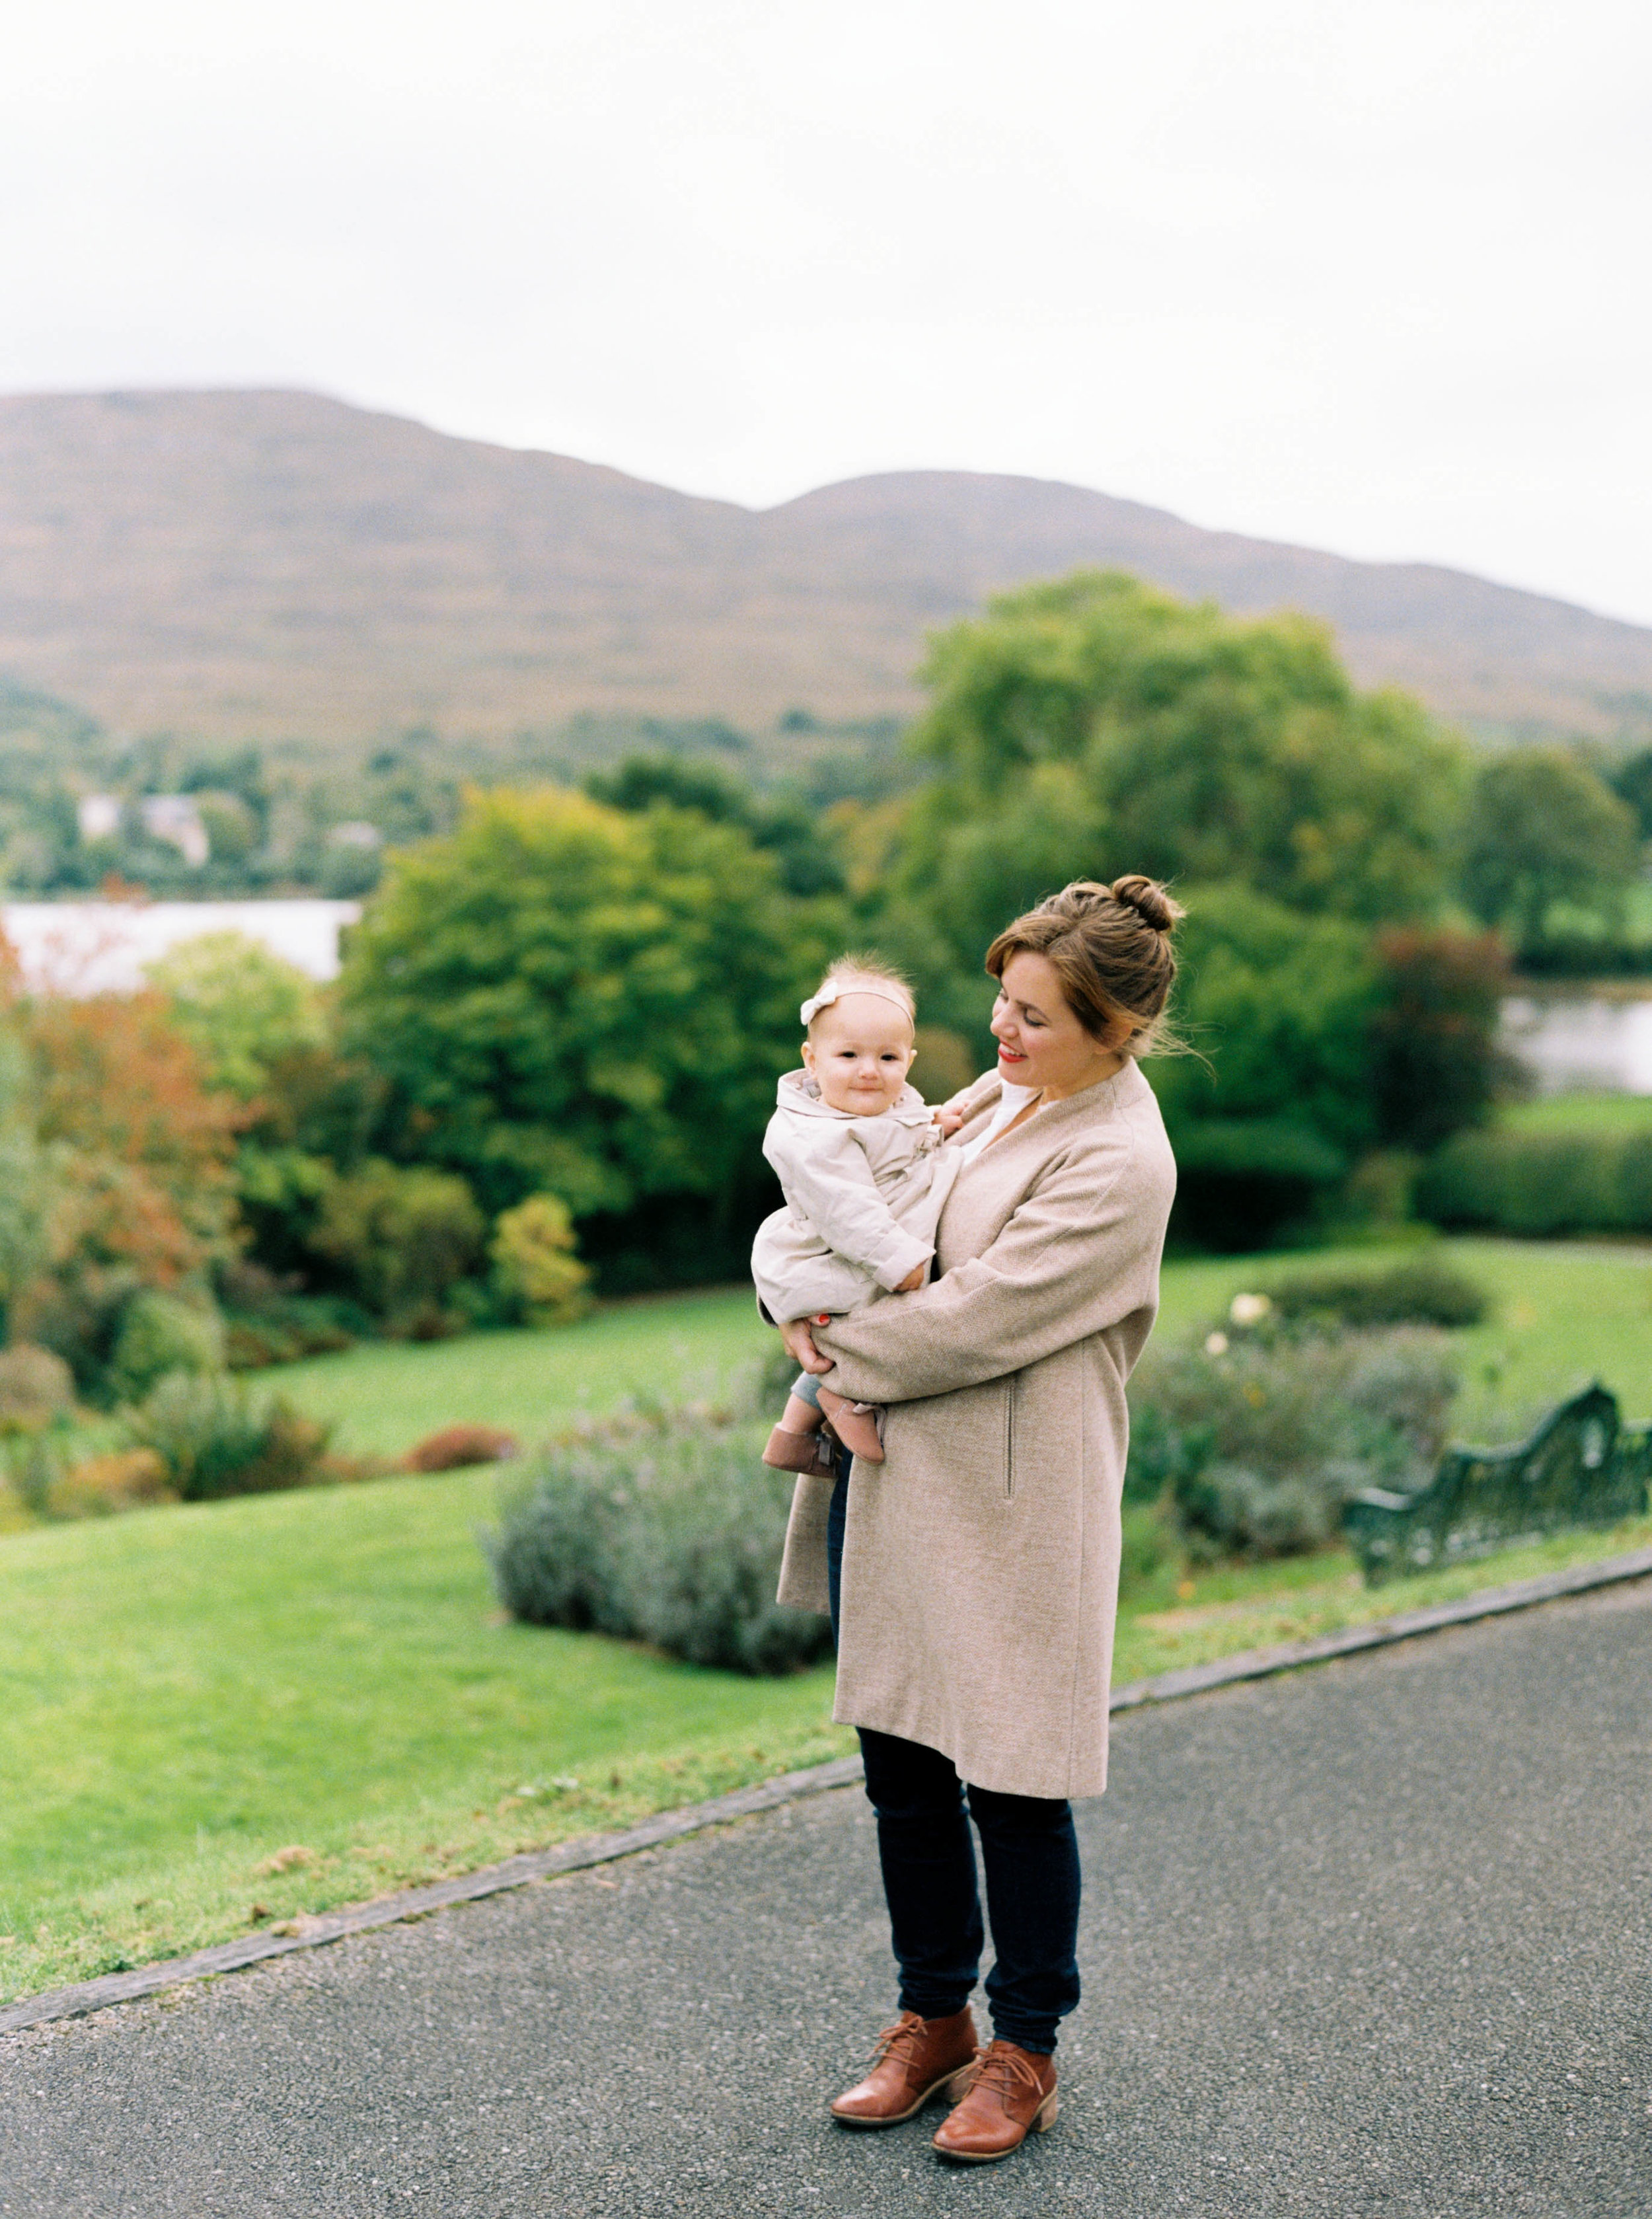 A Month of Travel with a 9 Month old | Sarah Carpenter Photography | Ireland Family Photography | Ireland Photographer